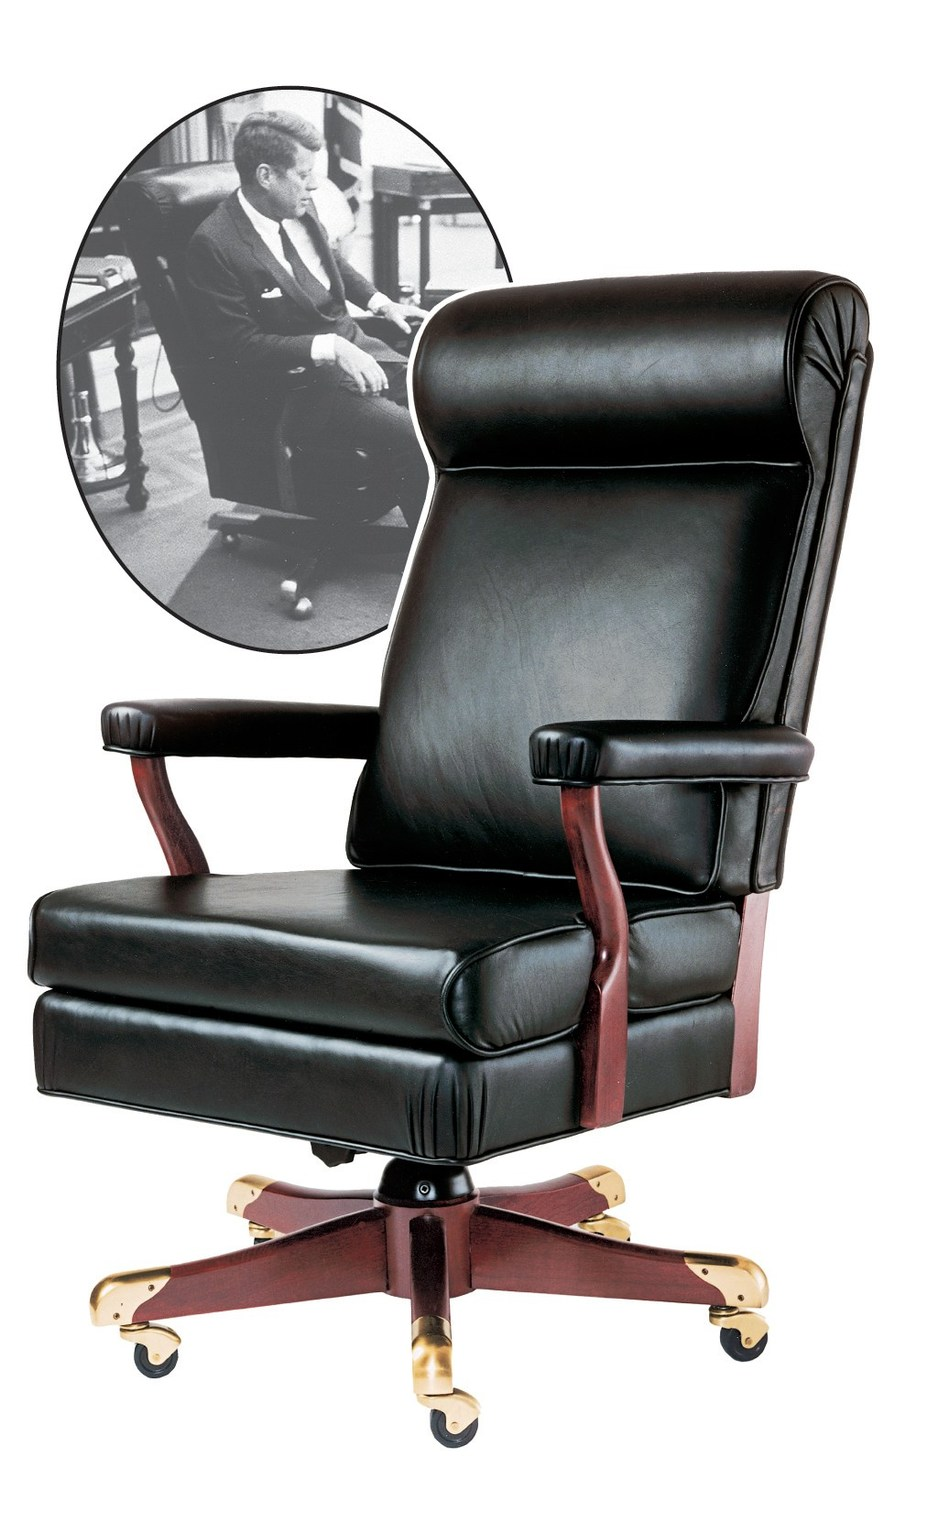 John F. Kennedy Oval Office Chair